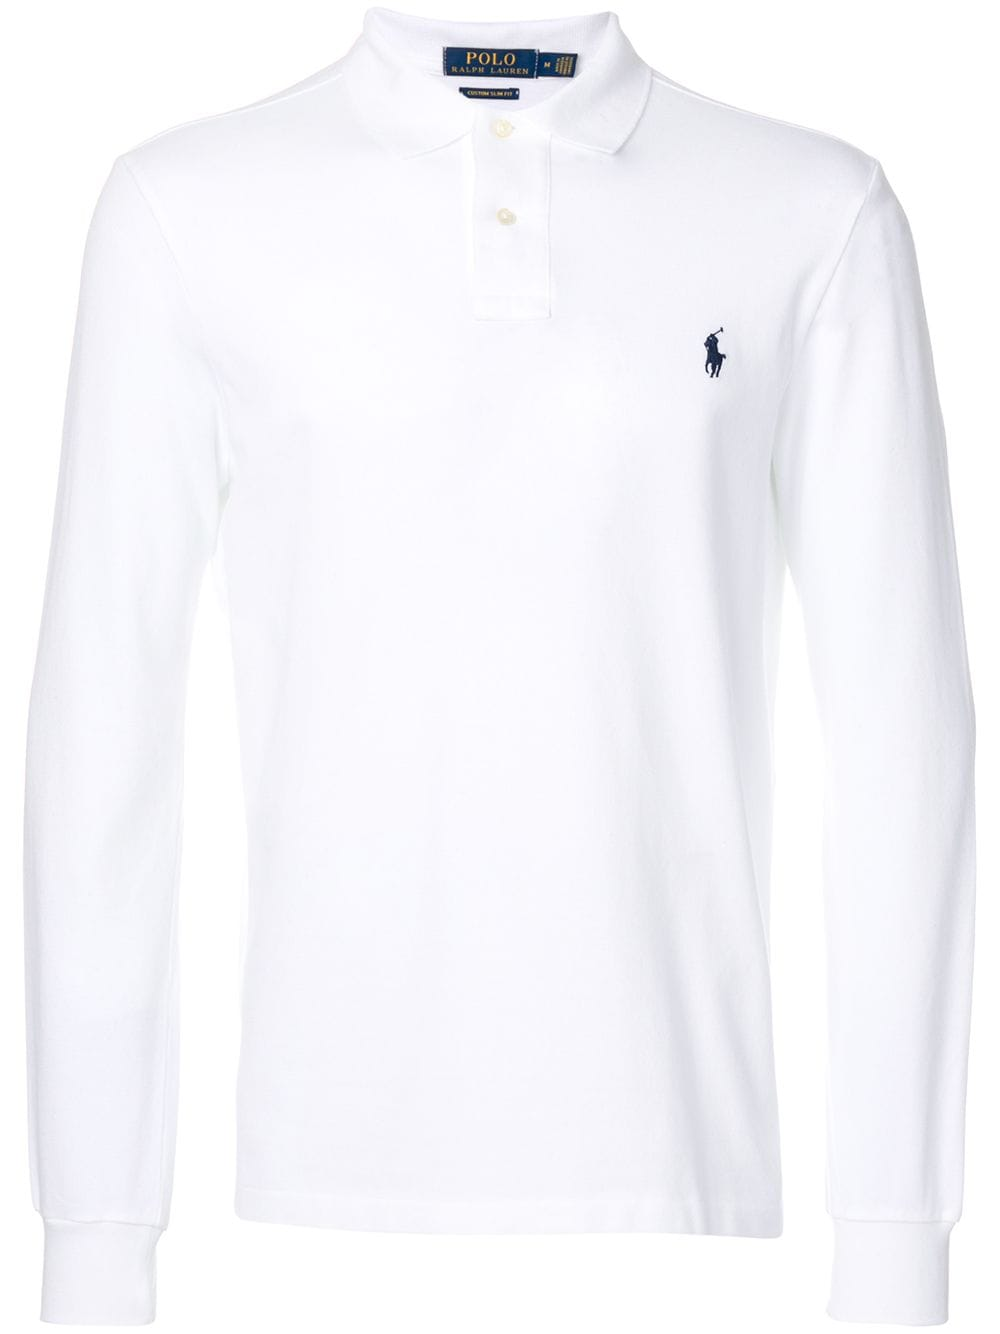 Polo Ralph Lauren longsleeved polo shirt - White von Polo Ralph Lauren